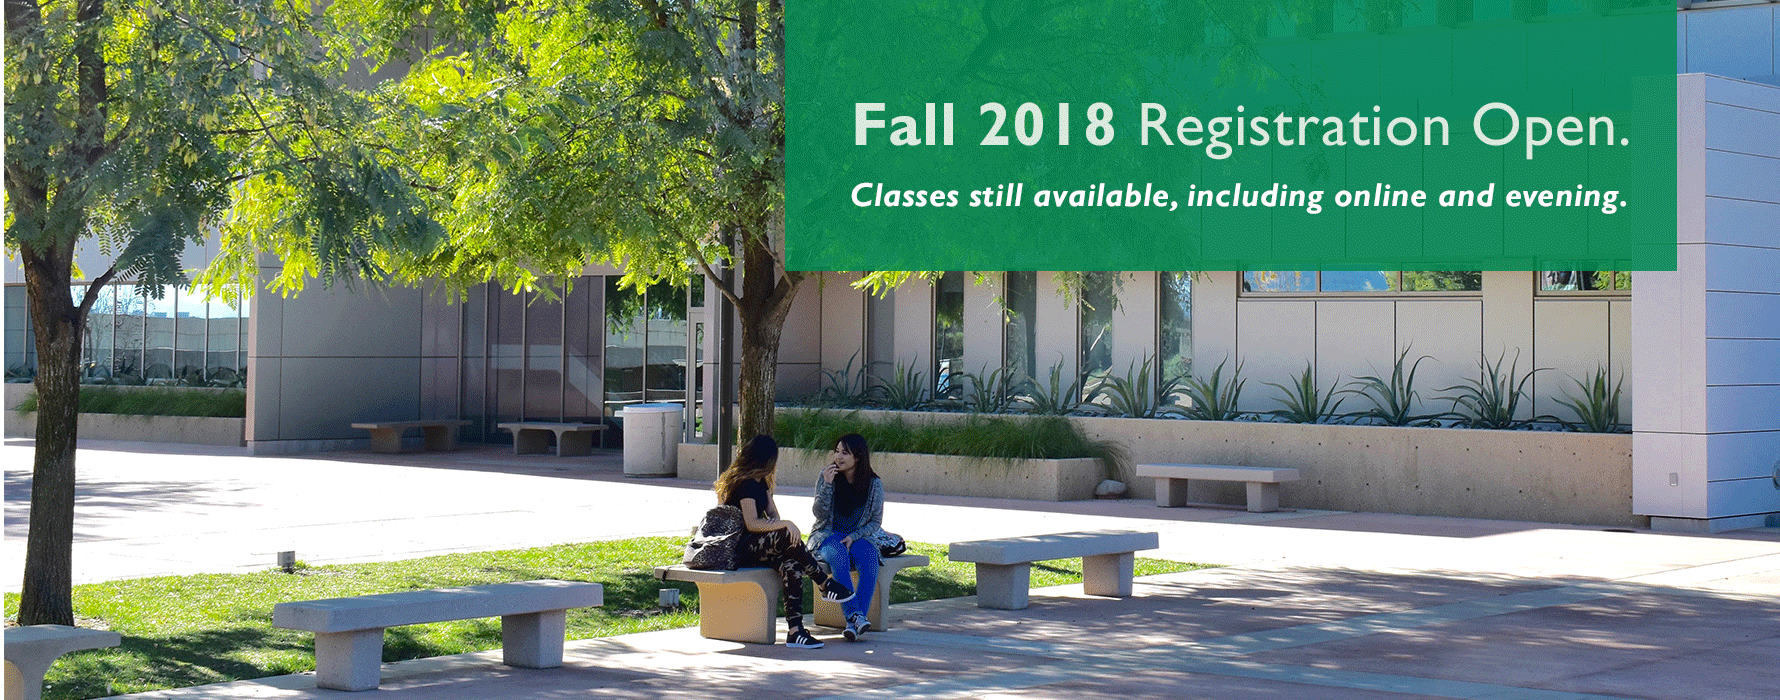 Fall 2018 Registration Open. Classes still available, including online and evening